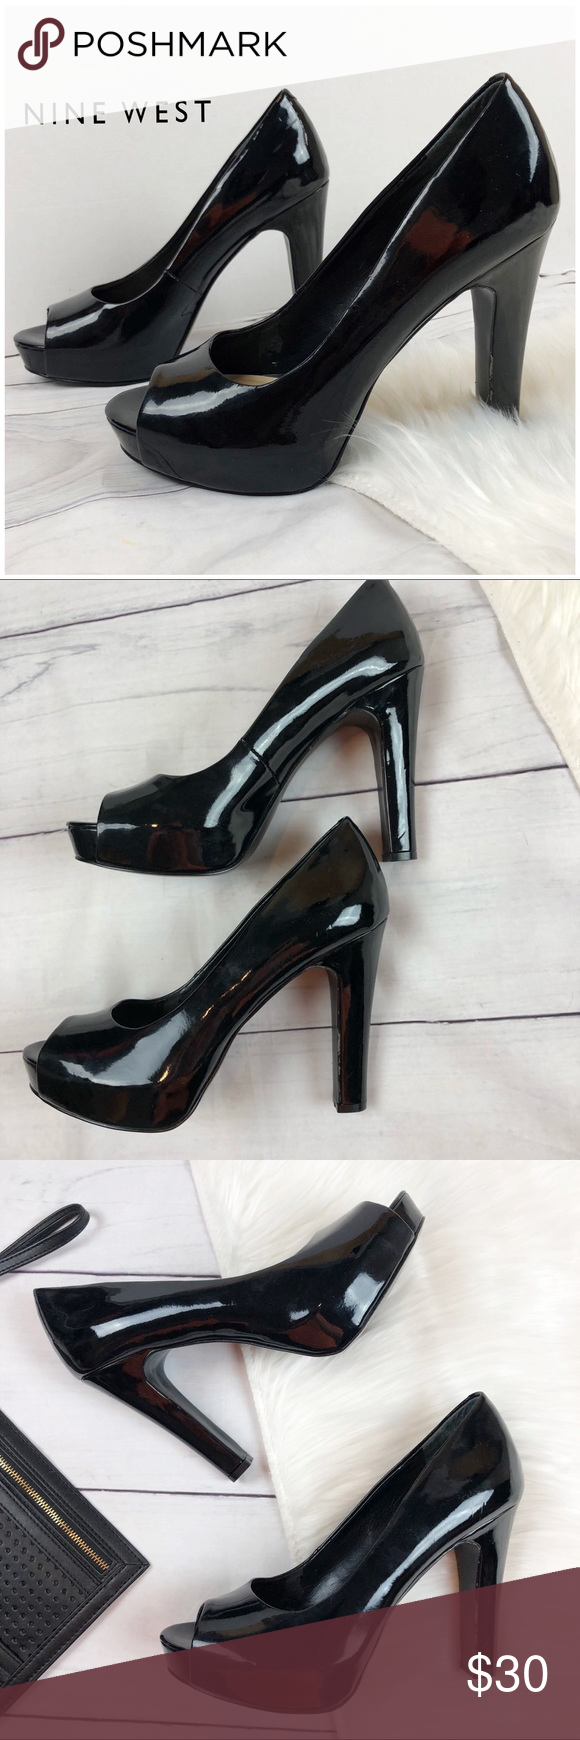 fecd1df6c52 Nine West Black Patent Leather Peep Toe High Heels Nine West Women s shoe size  8 M medium Jordyo High heel Black patent leather Peep toe In very good ...